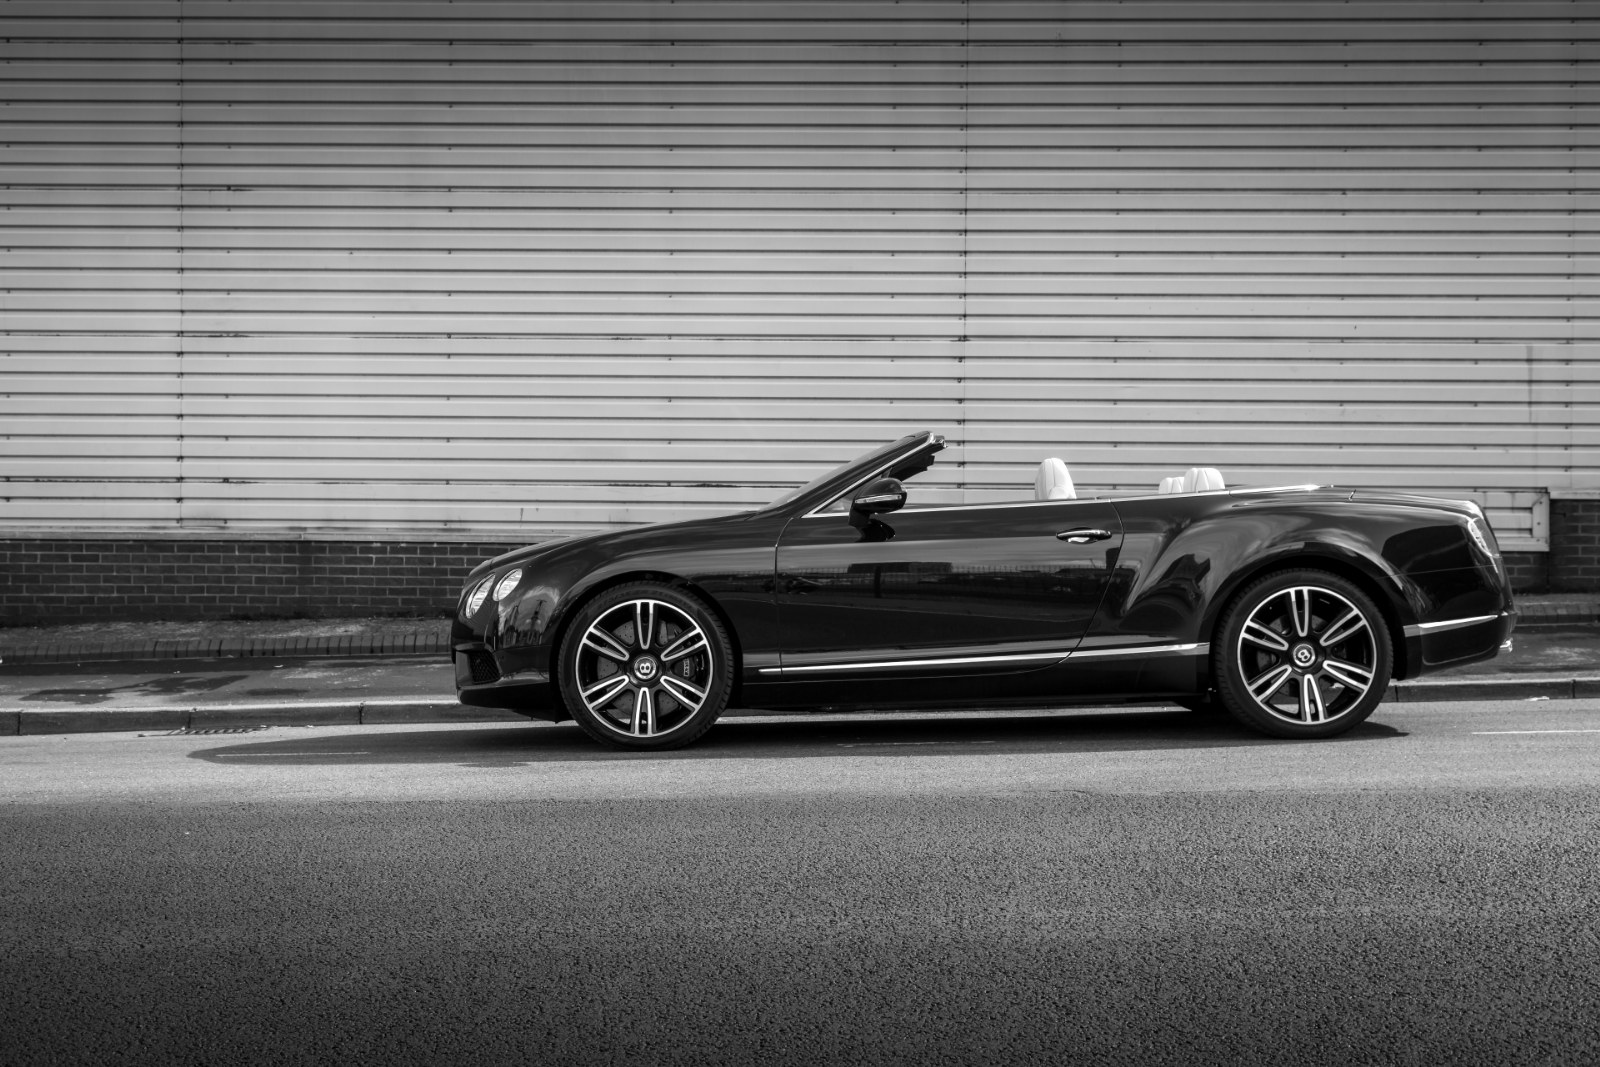 Bentley continental gt v8 convertible 7 day diary bentley continental gt v8 convertible vanachro Image collections